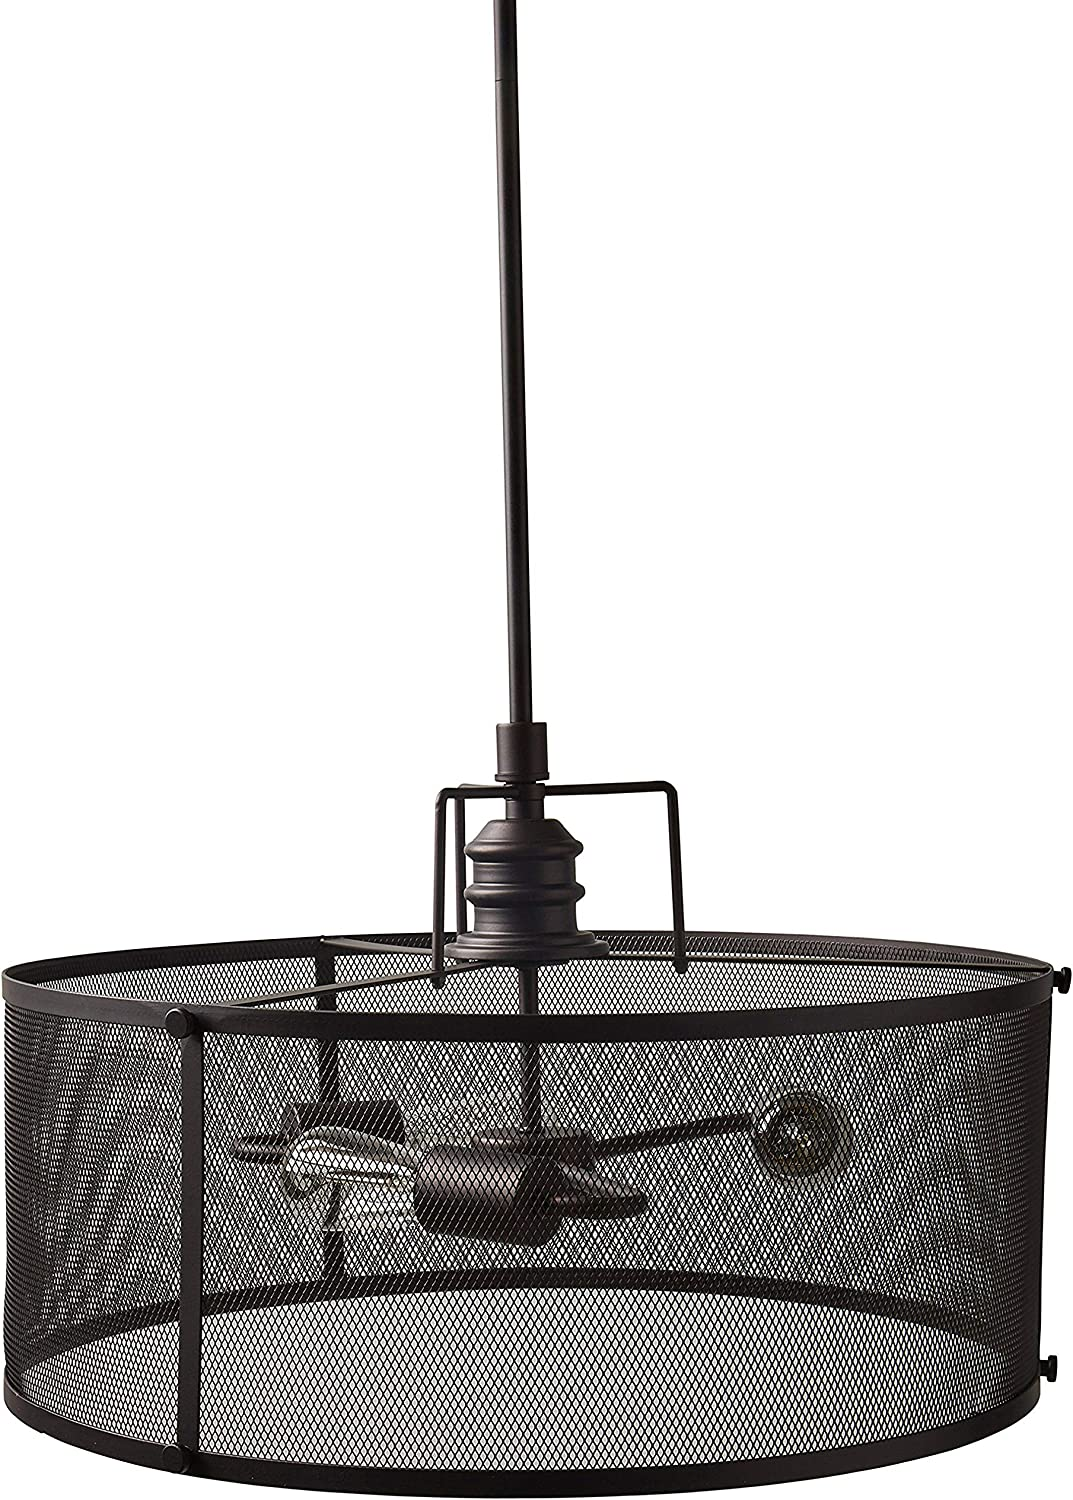 Emliviar 4 Light Foyer Chandelier, Lantern Pendant Light Cage Hanging Light for Entryway Dining Room, Black and Gold Finish, 2086P-4 BG